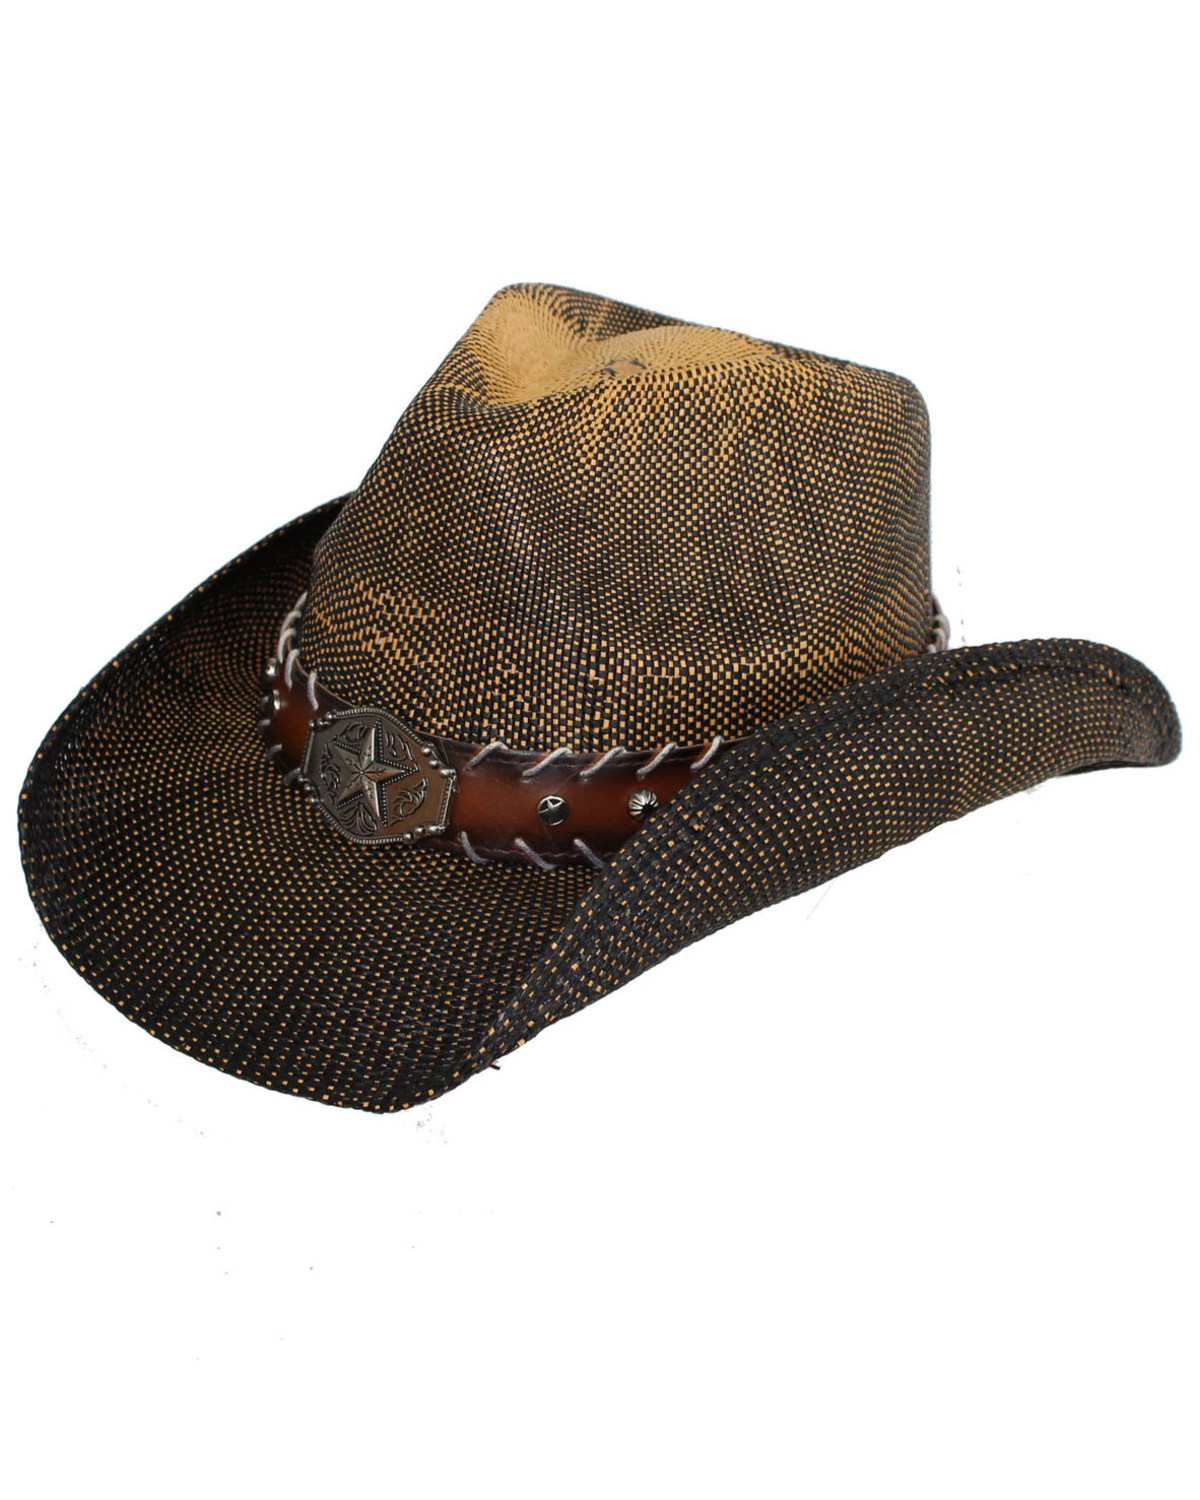 1b26faf3bf7 Peter Grimm Women s John Brown Concho Straw Hat